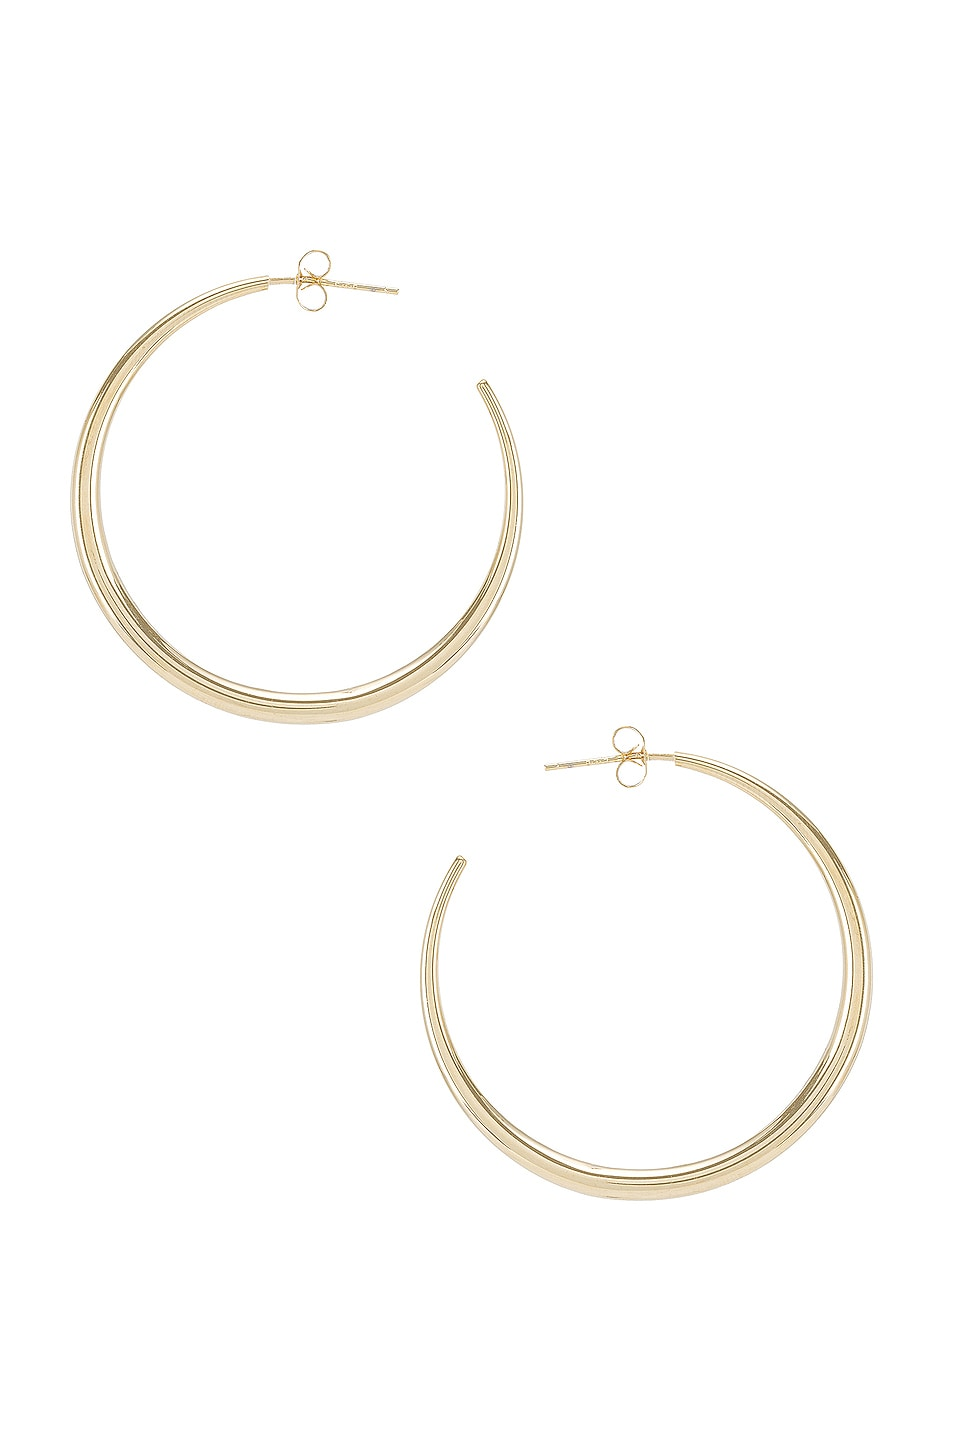 Natalie B Jewelry Behare Hoops in Gold